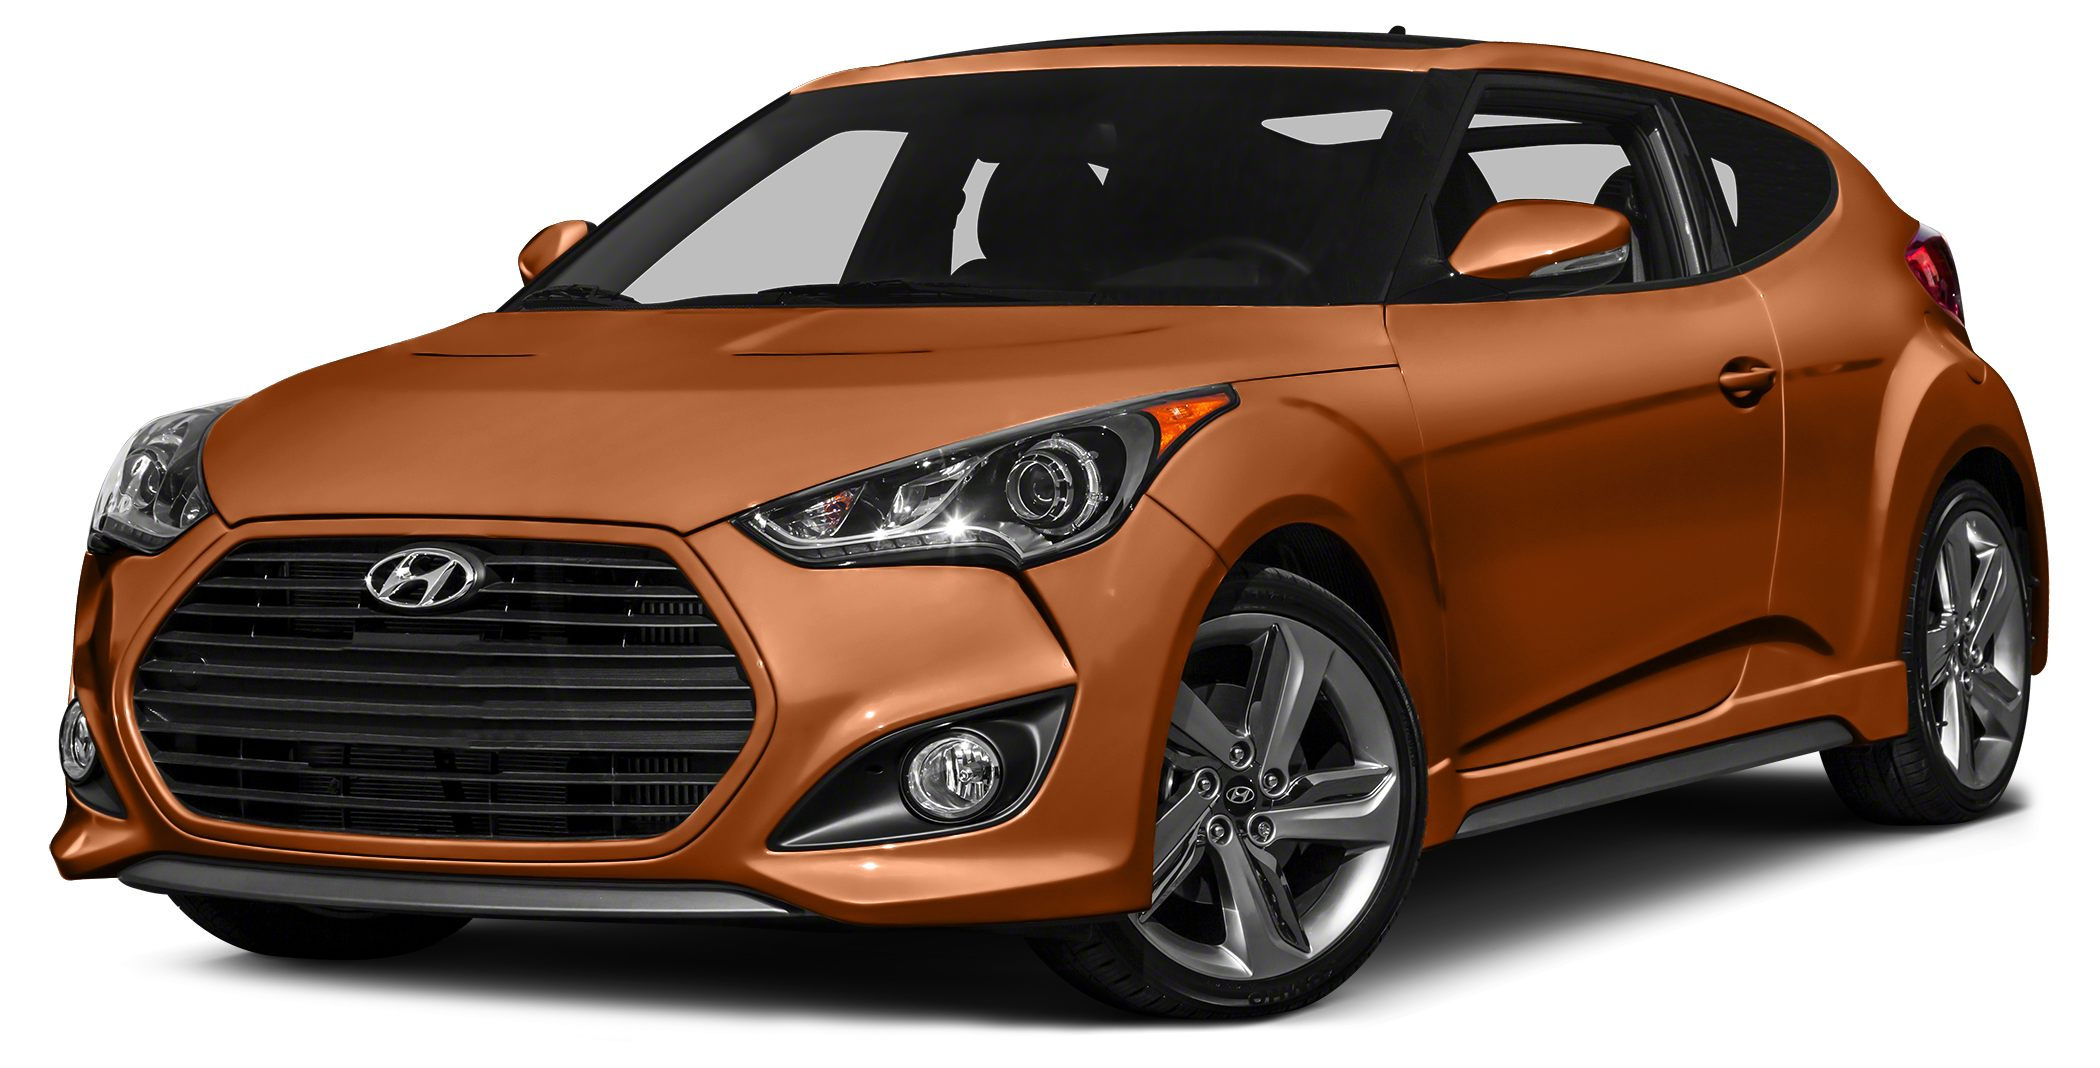 2014 Hyundai Veloster Turbo wBlack This 2014 Hyundai Veloster 3dr 3dr Coupe Automatic Turbo with